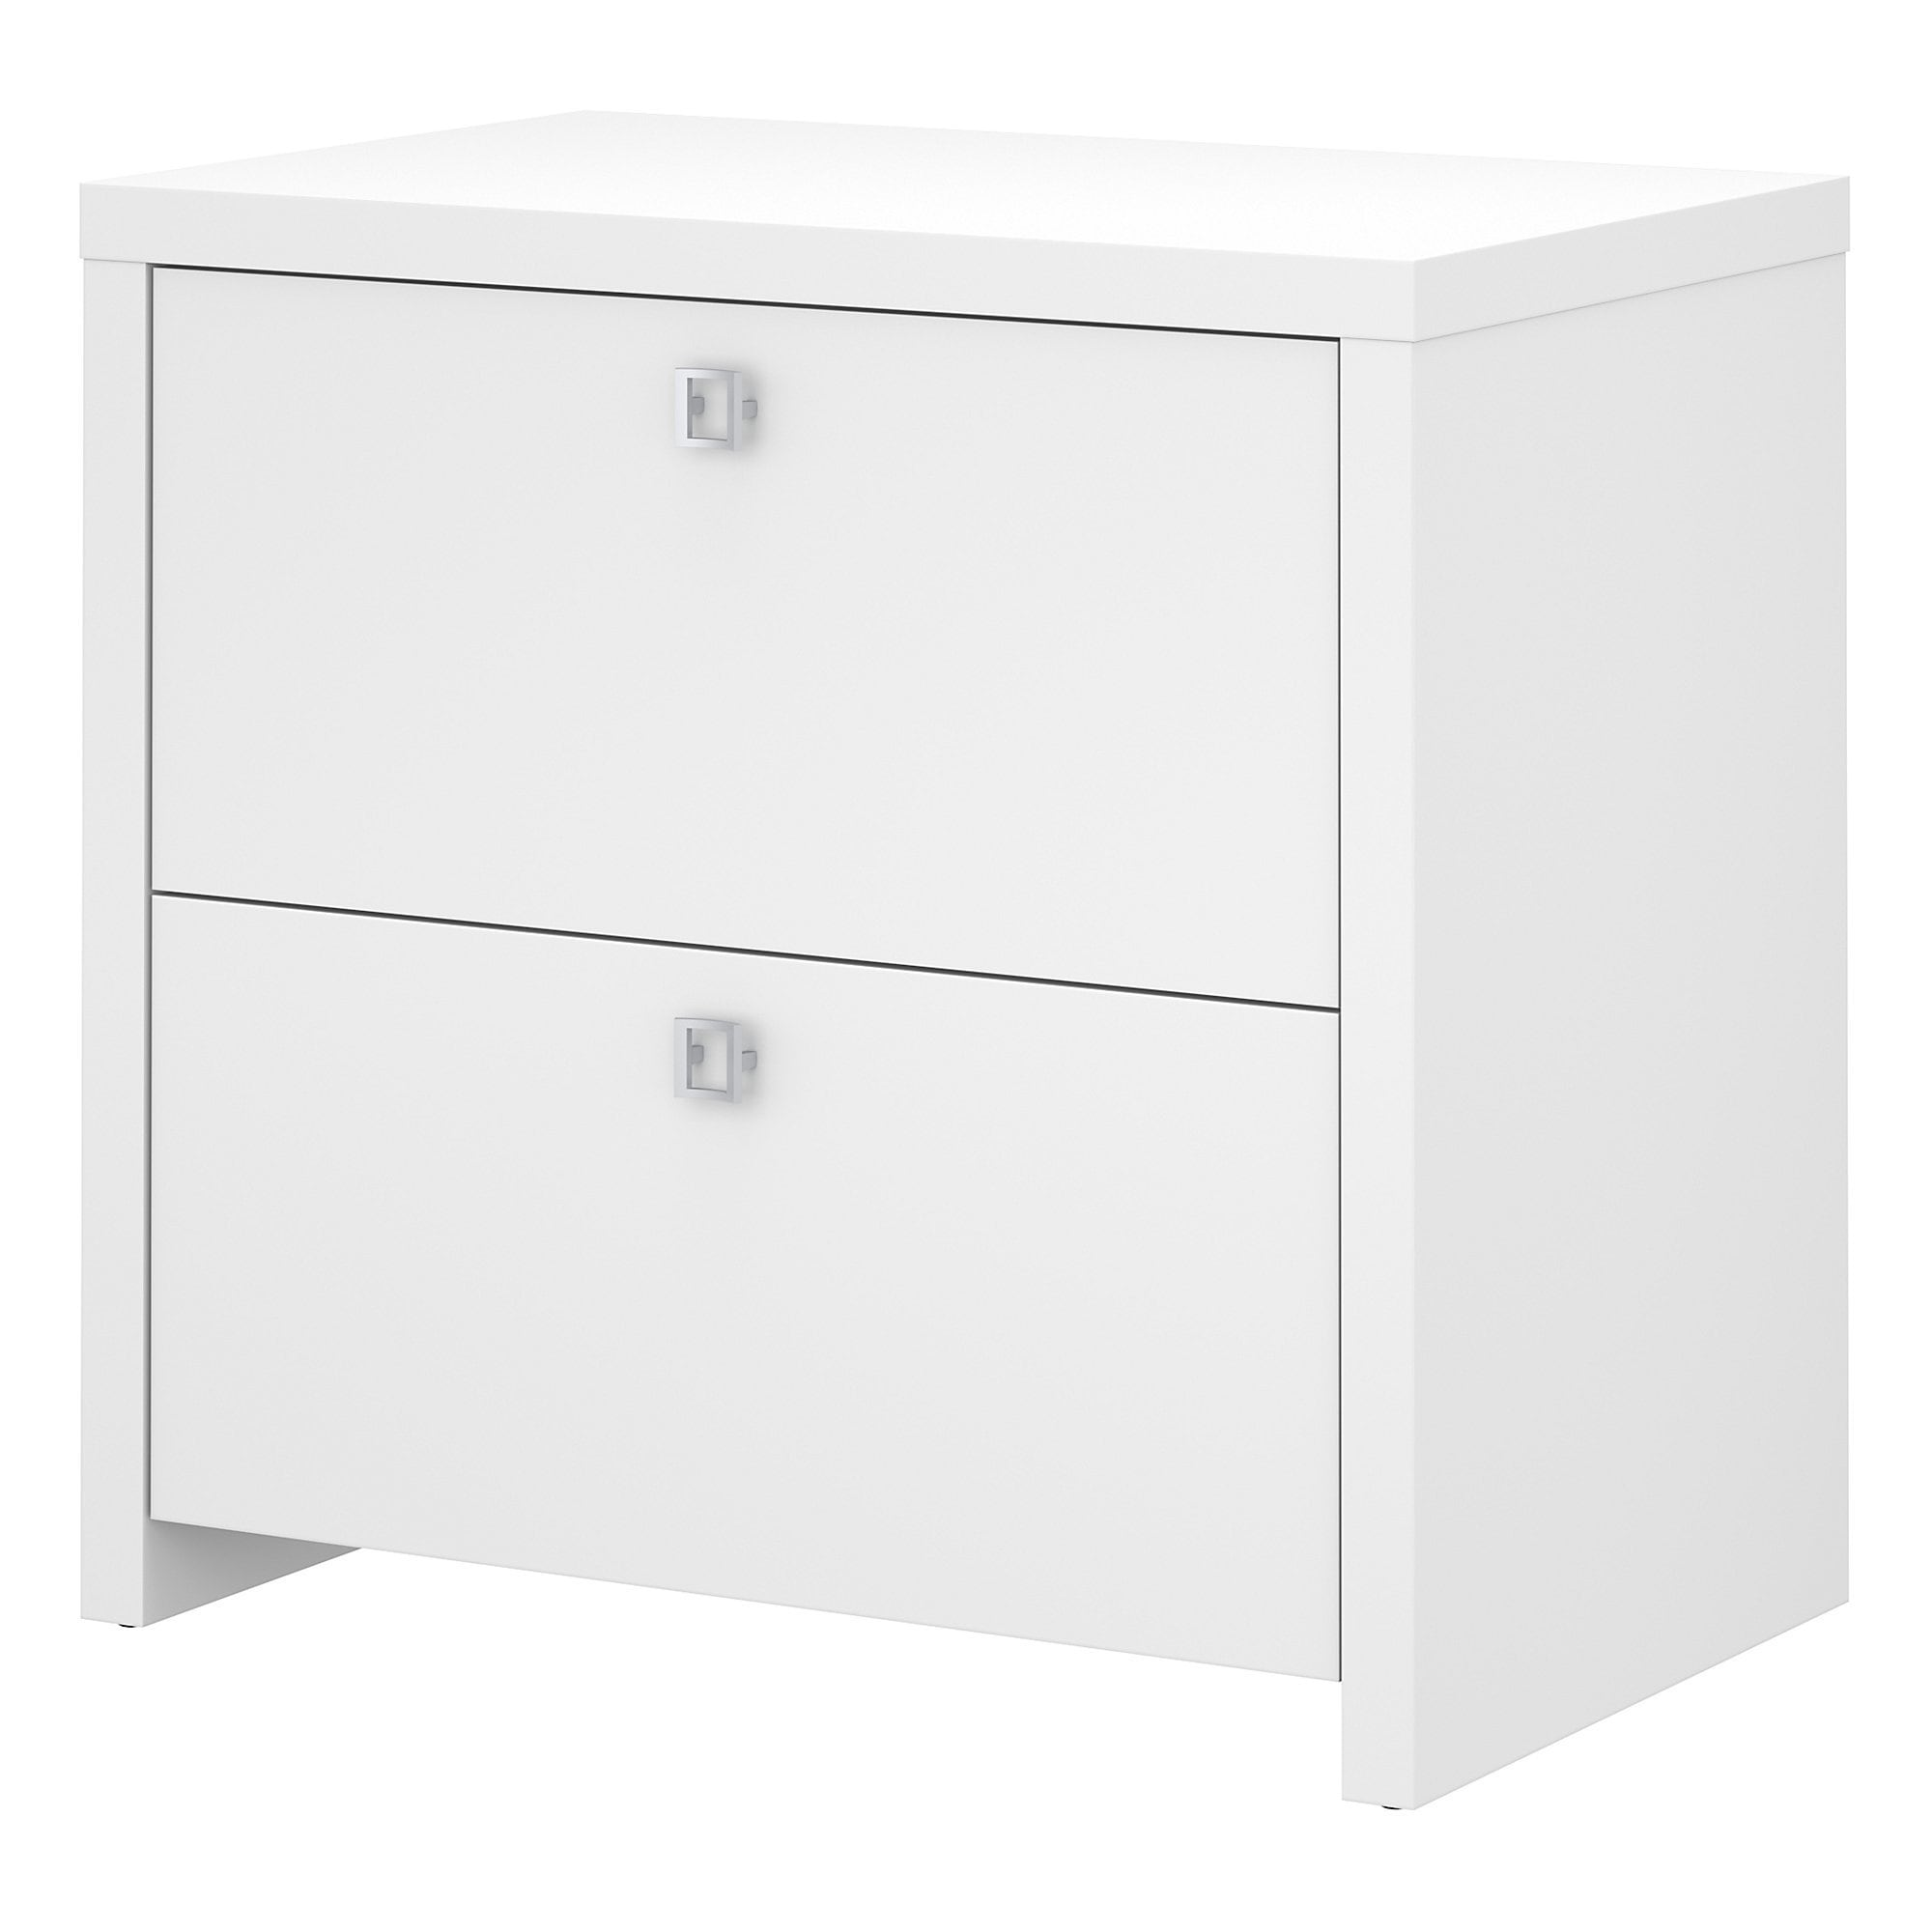 drawer today cabinet garden series hirsh product free file lateral cabinets home shipping commercial overstock